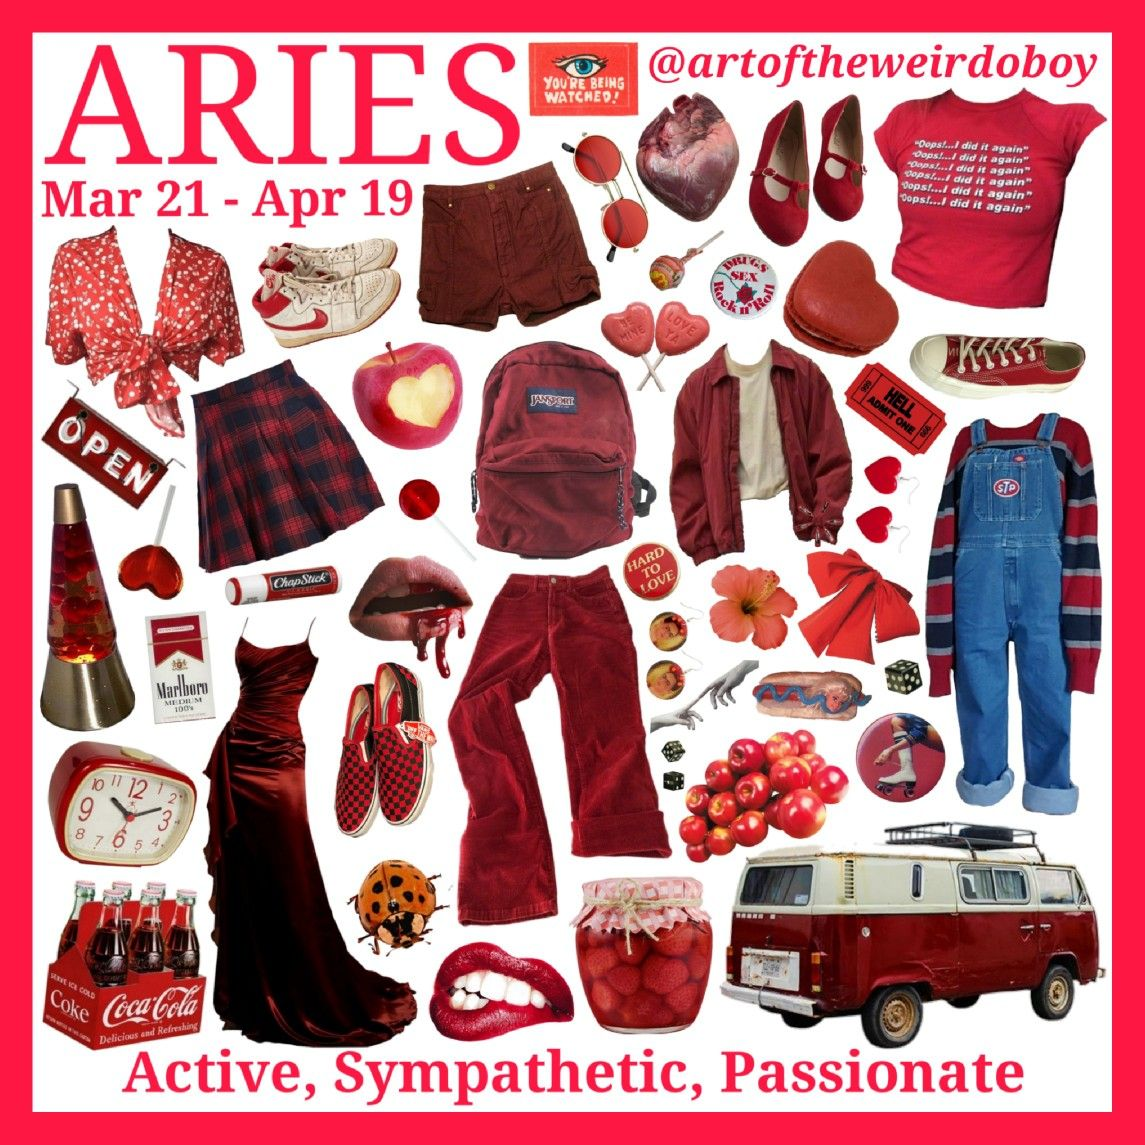 Ig Artoftheweirdoboy Made This Aries Aesthetic Aries Outfits Zodiac Sign Fashion